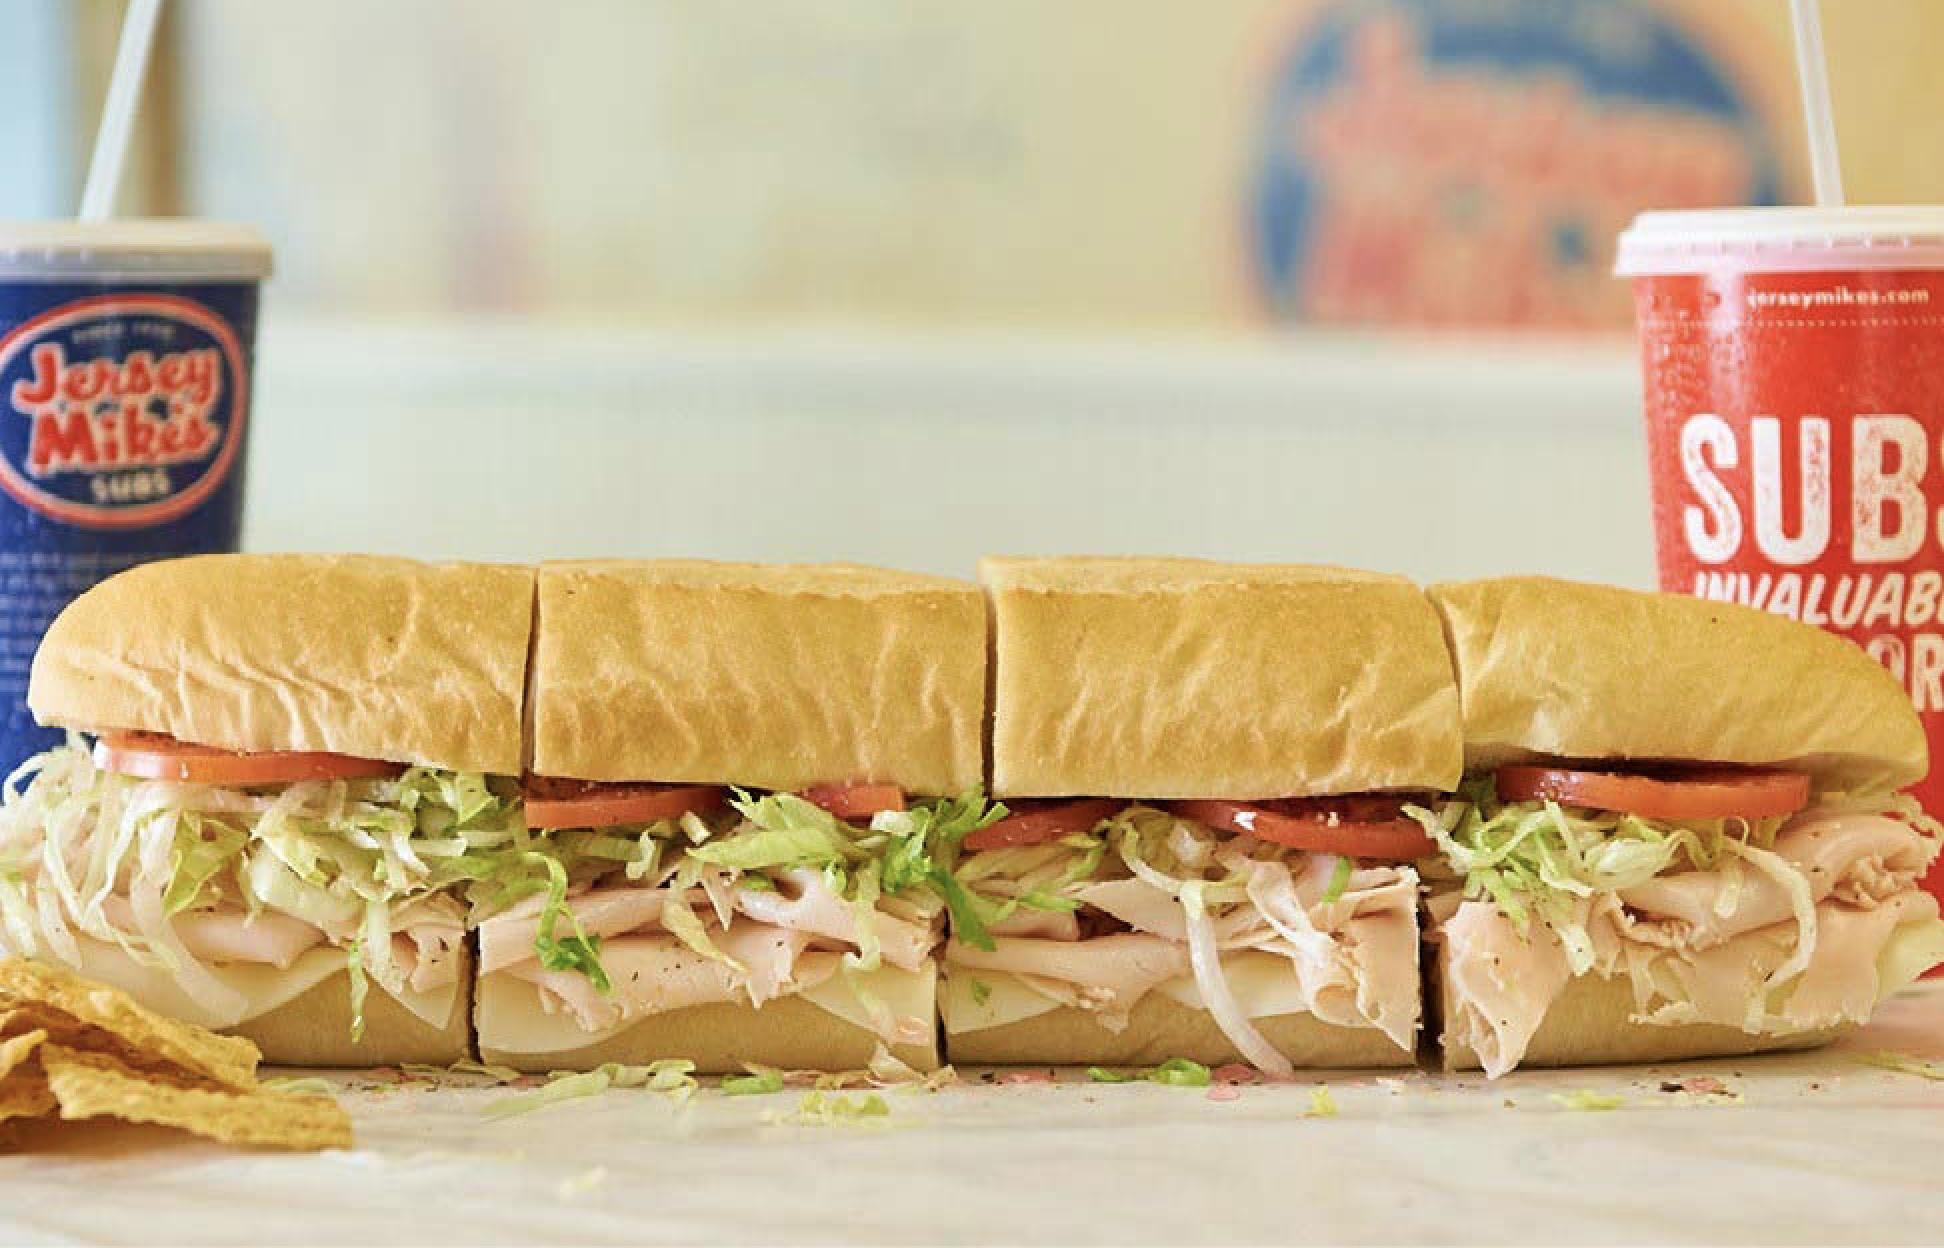 Matching media for Jersey Mike's